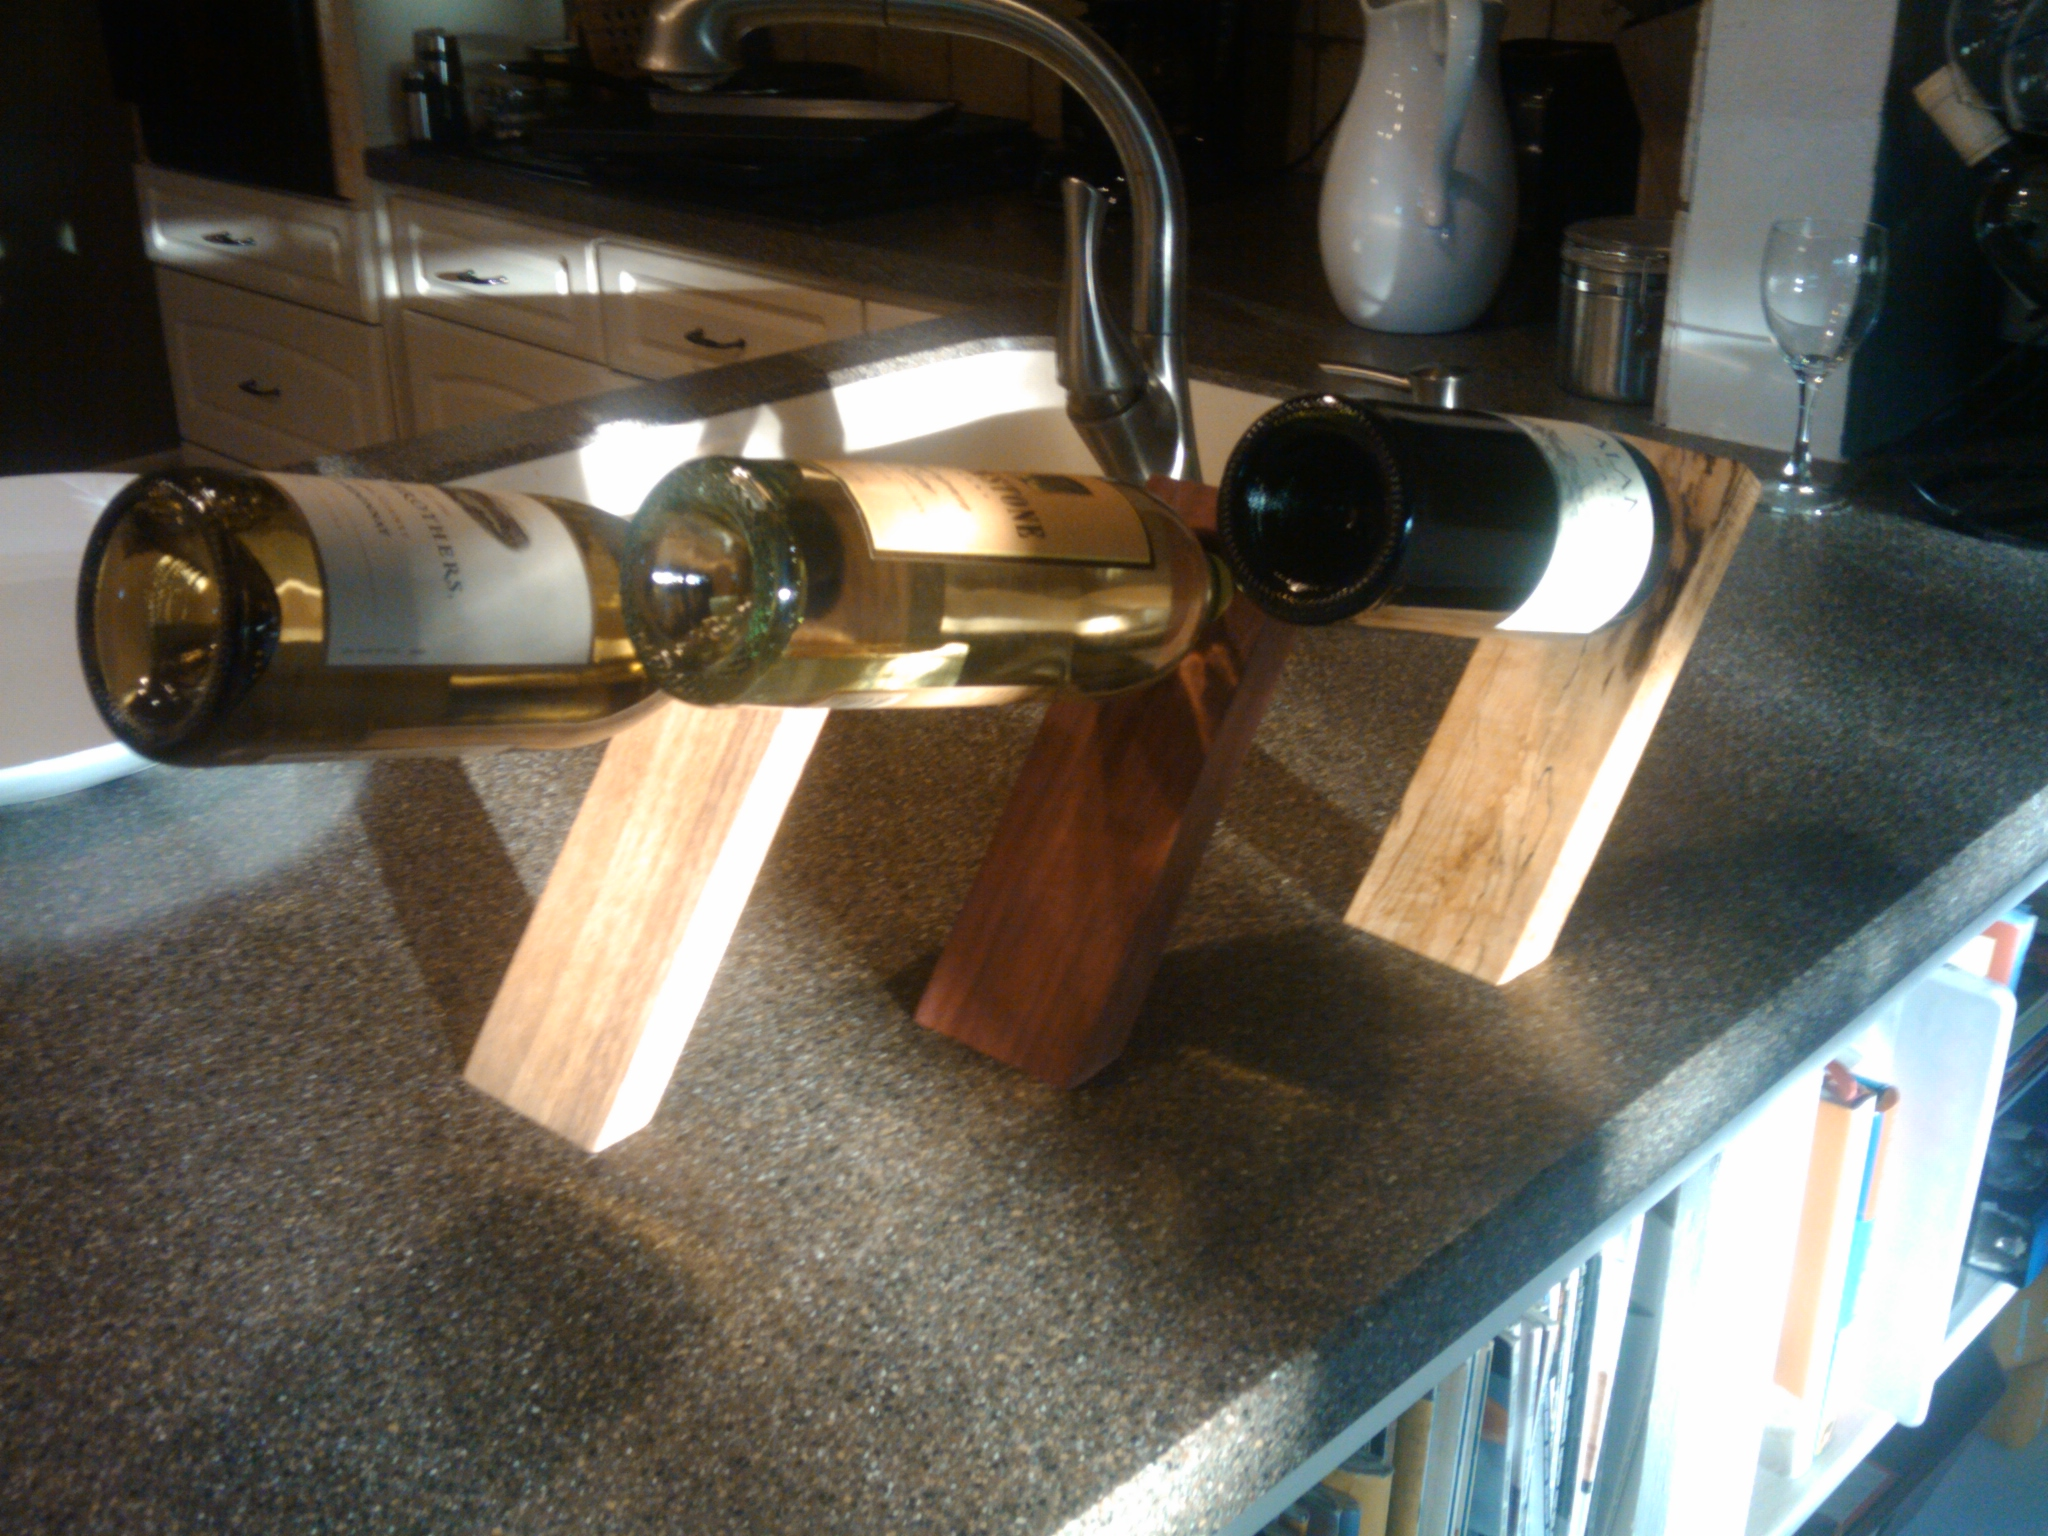 Wine Bottle Storage Angle Stuff Ive Built The Wine Bottle Balancers Toms Workbench